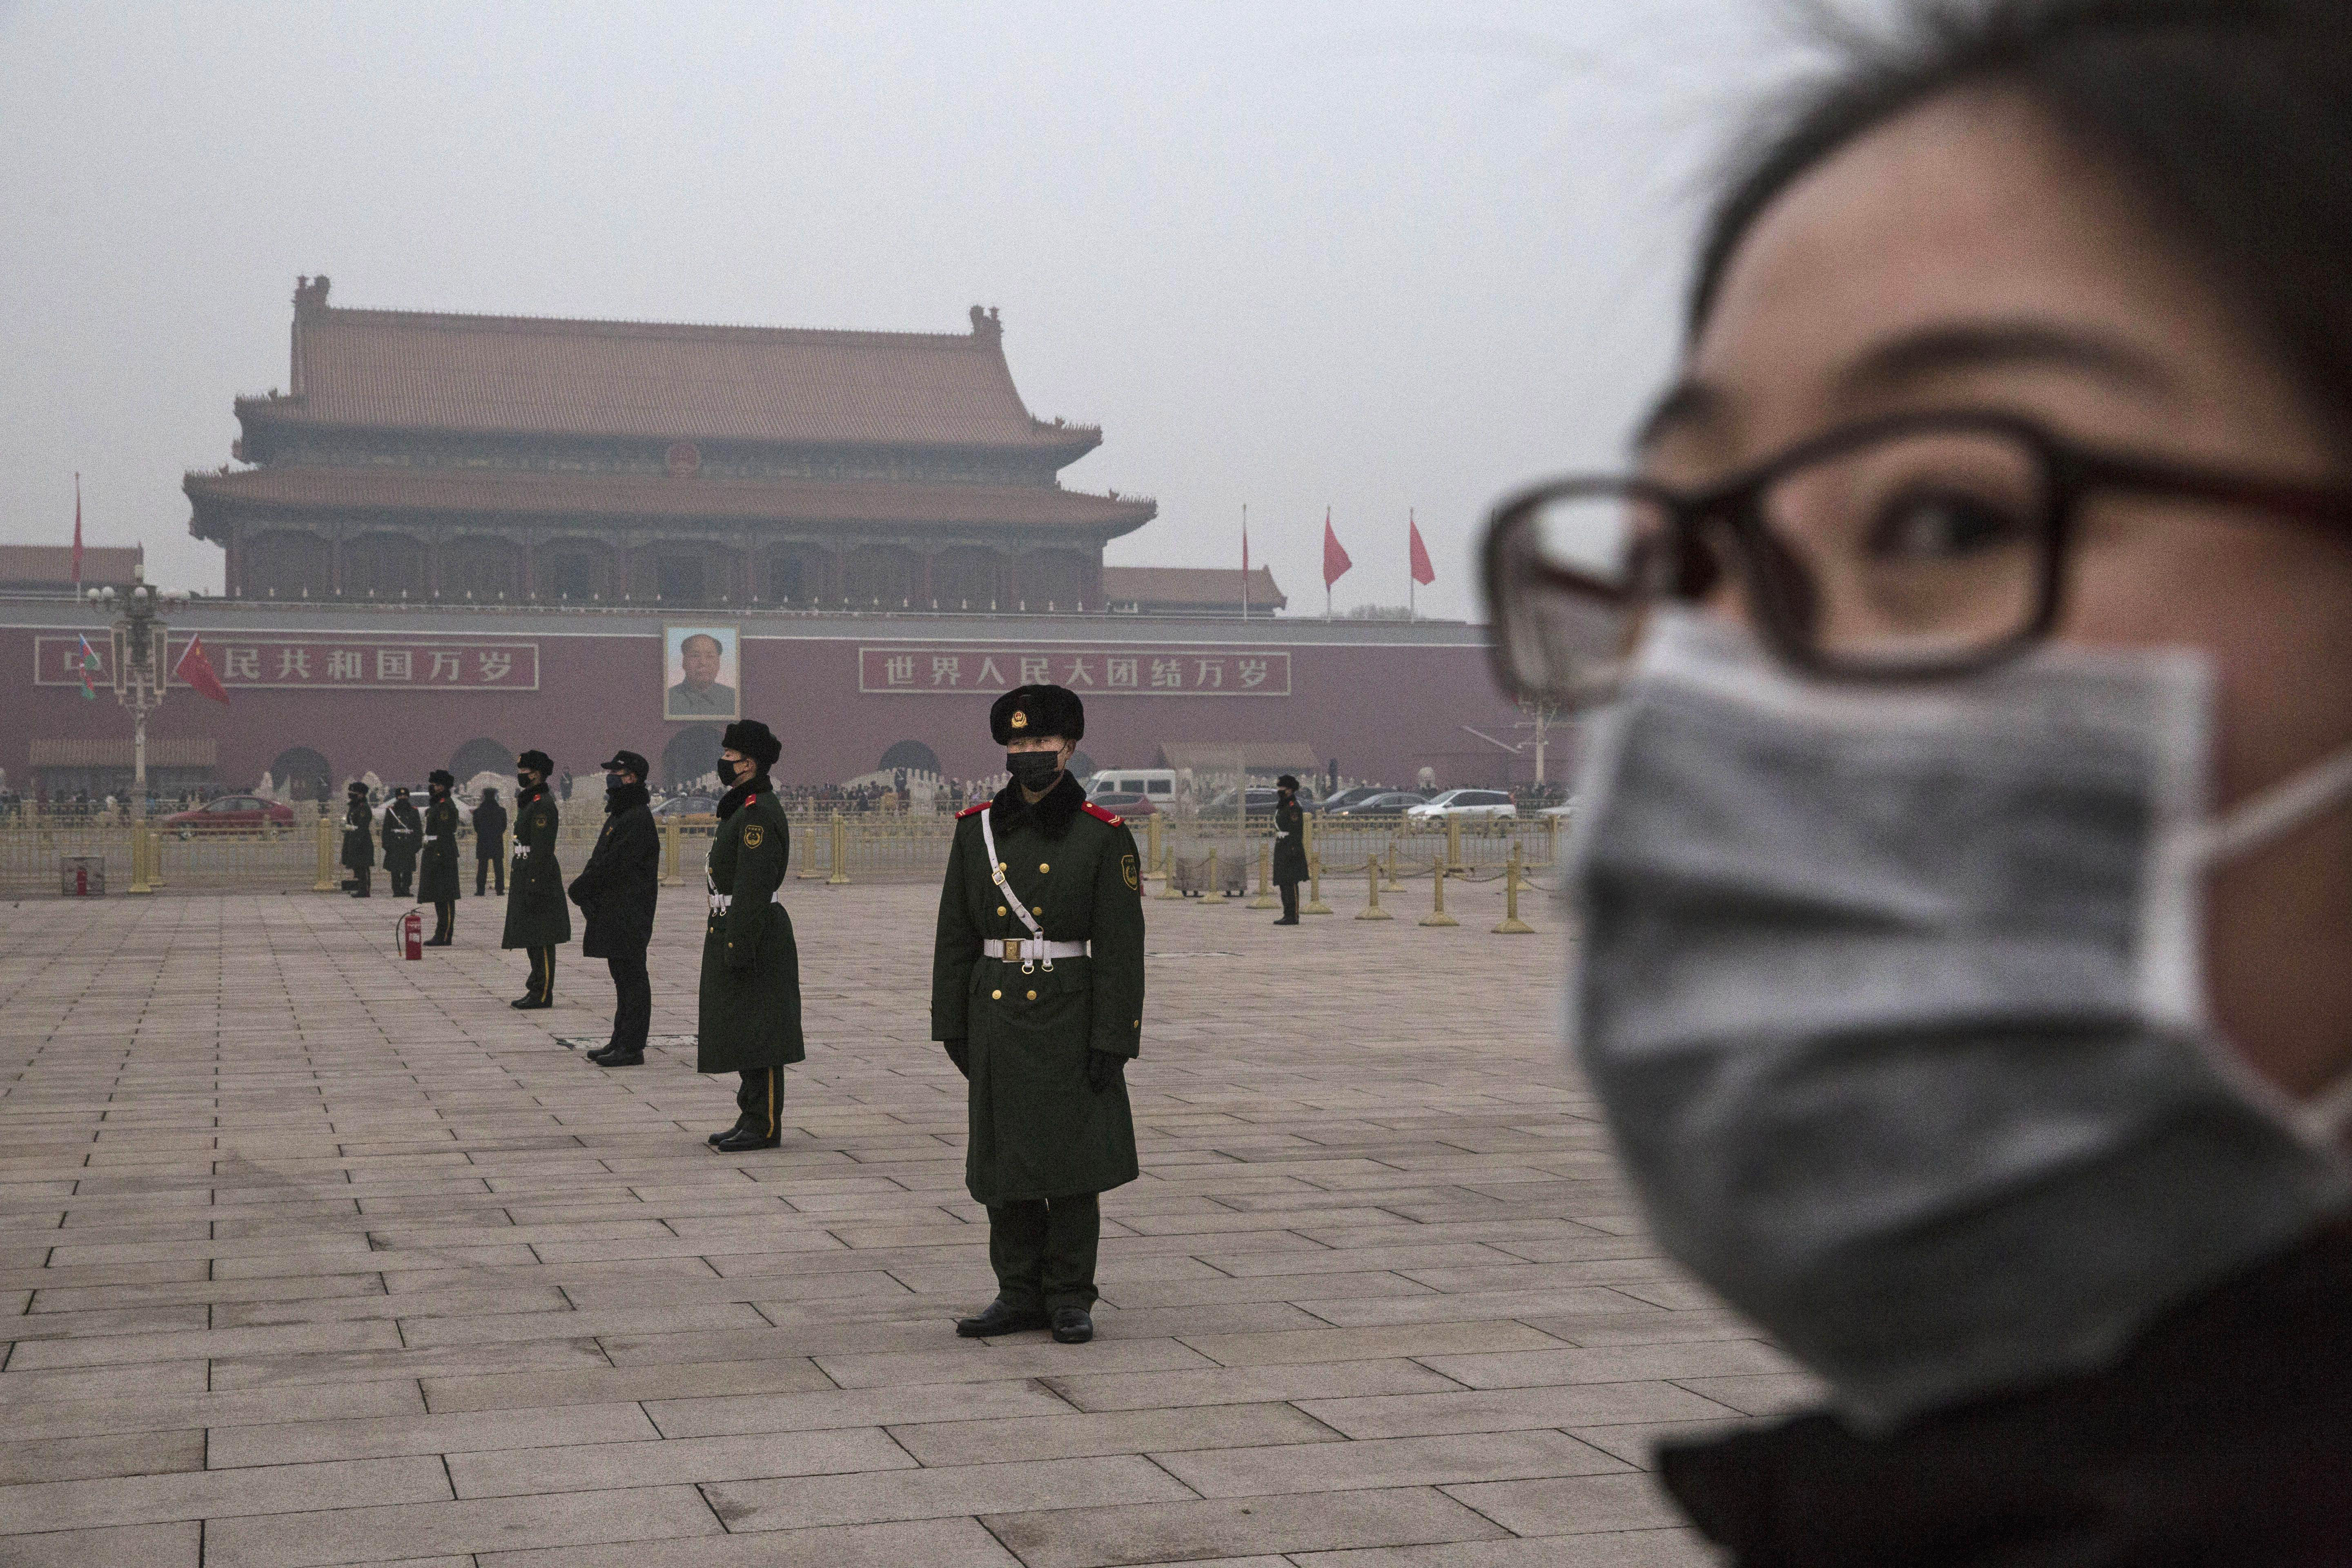 newrepublic.com - Daniel K. Gardner - 'What About China?' Is a Bad Response to the Climate Crisis